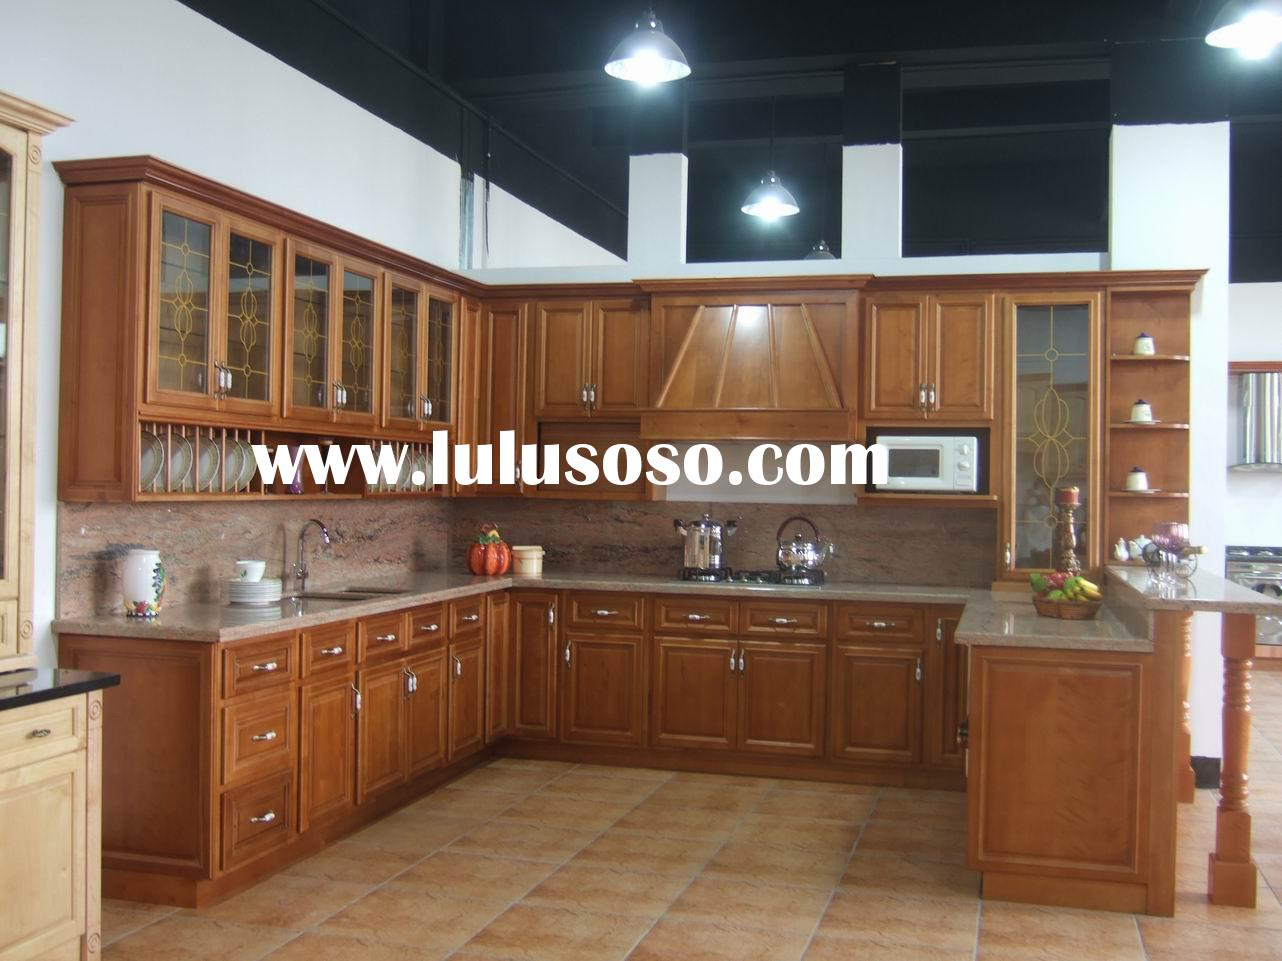 Solid Cherry Wood Kitchen Cabinets with Granite Countertop and